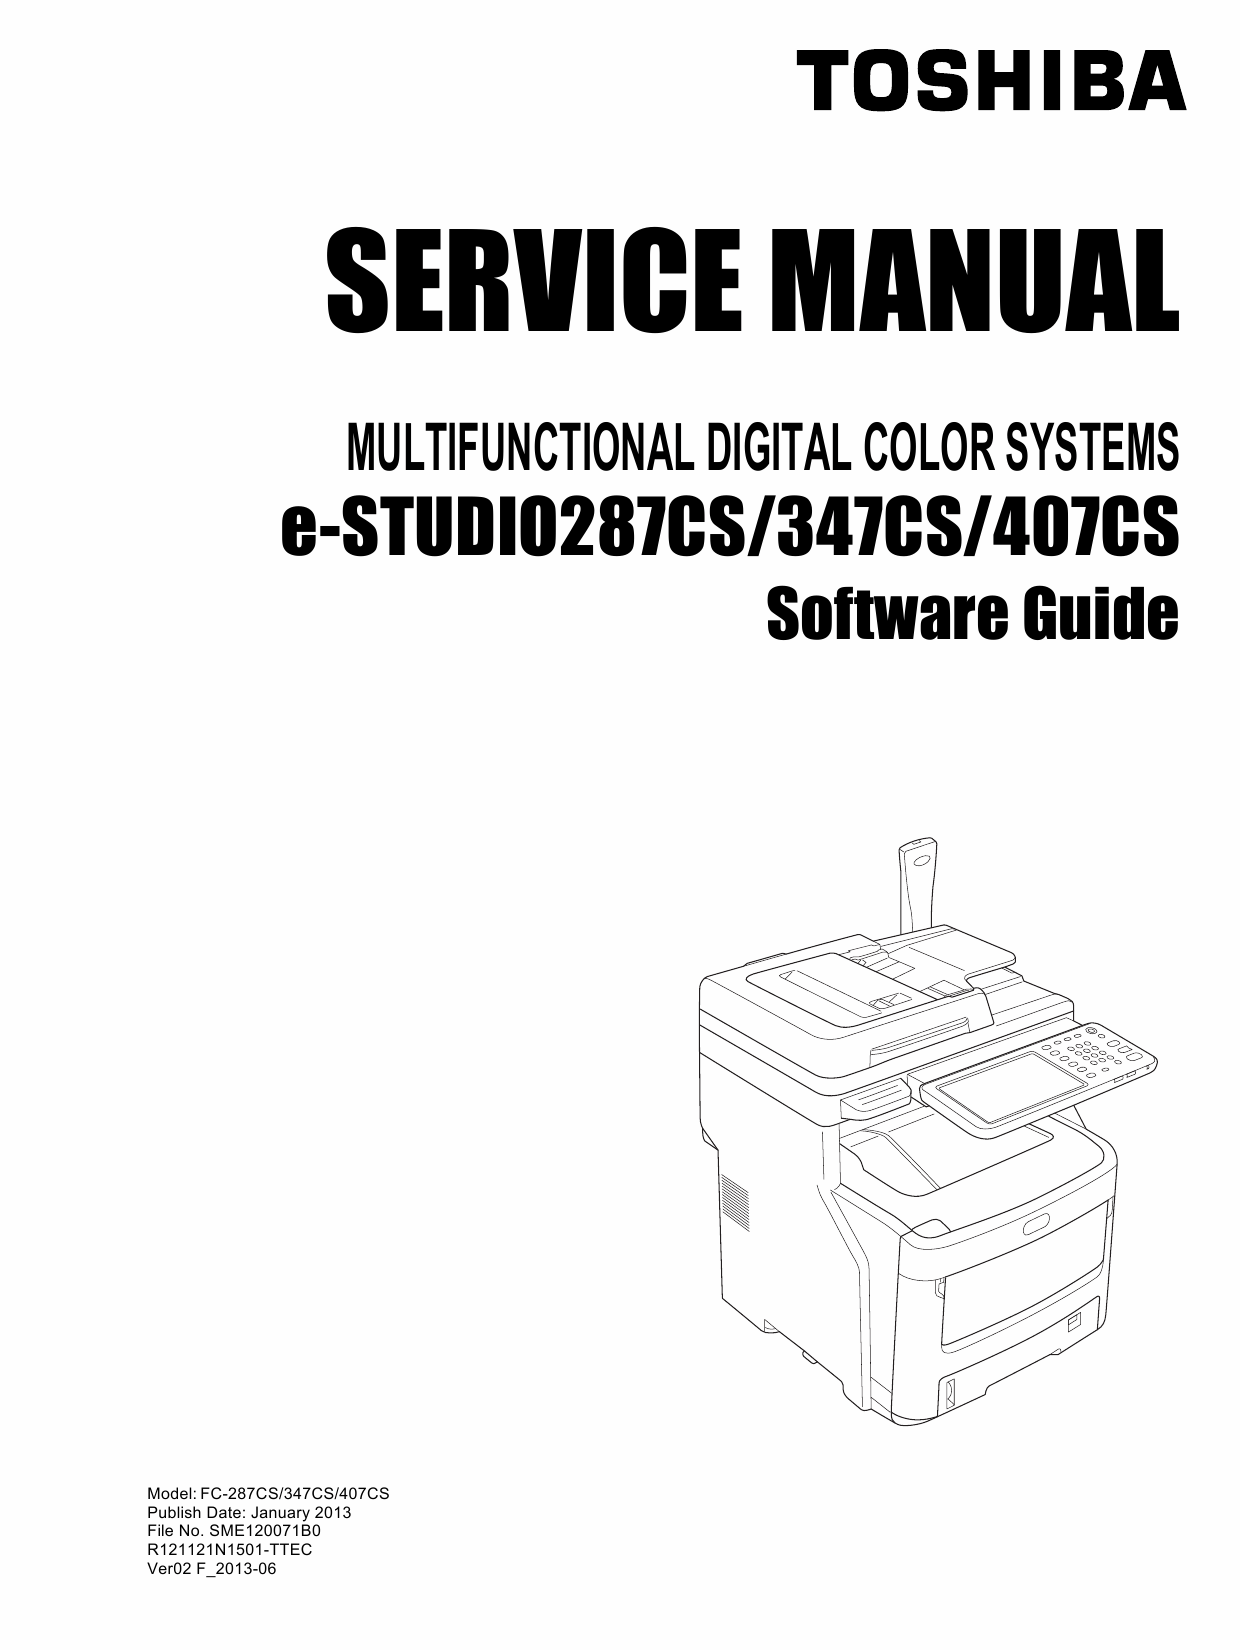 TOSHIBA e-STUDIO 287CS 347CS 407CS Software Service Manual-1